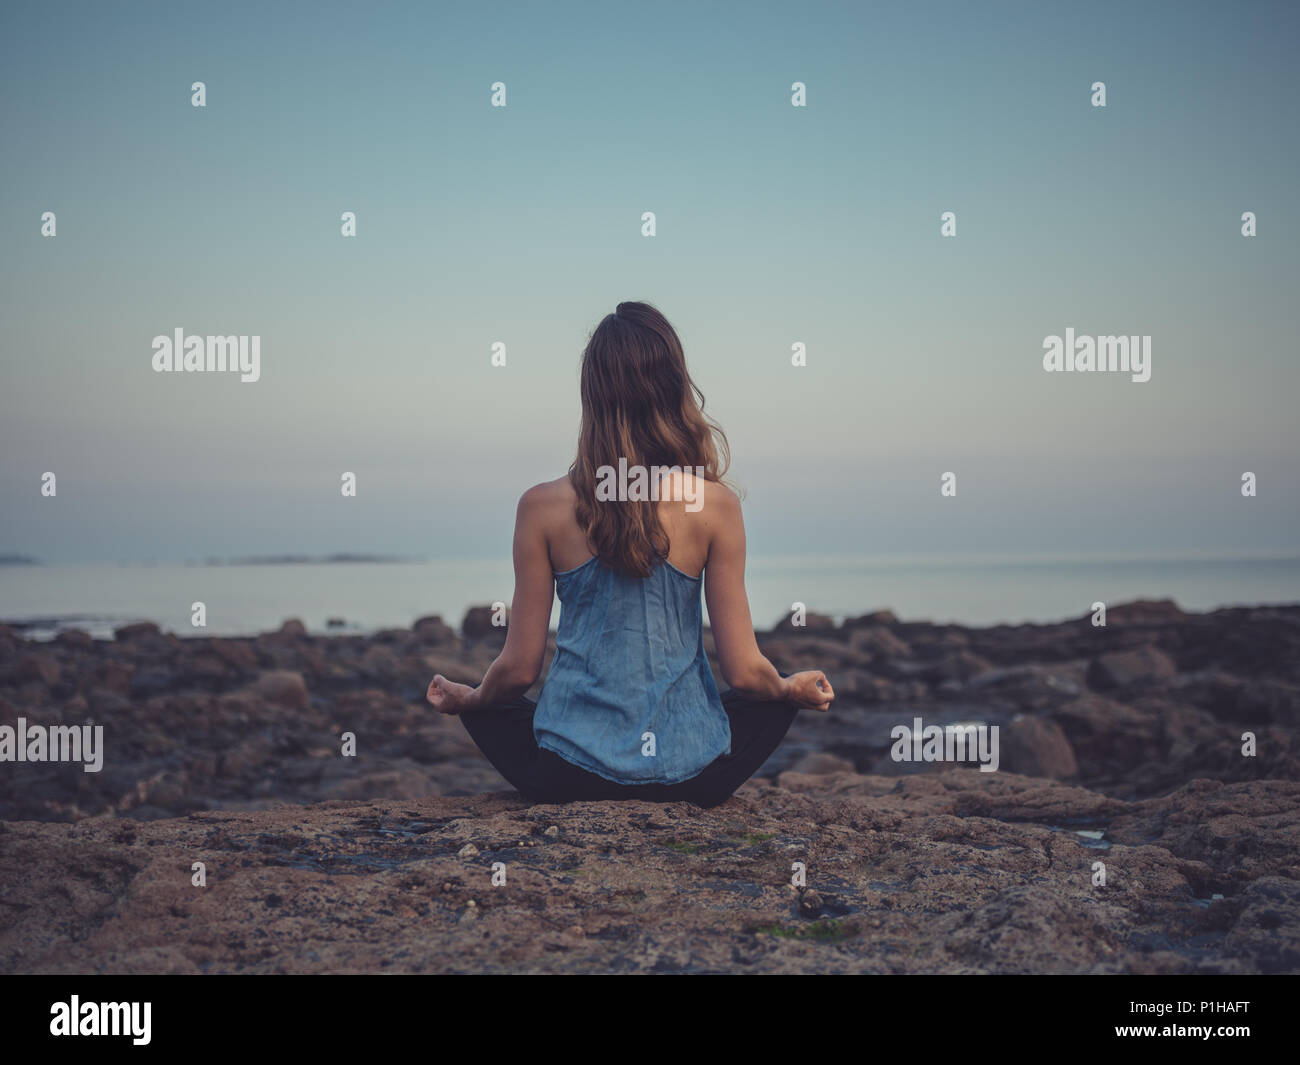 A young woman is sitting on the rocks by the sea at sunset meditating - Stock Image